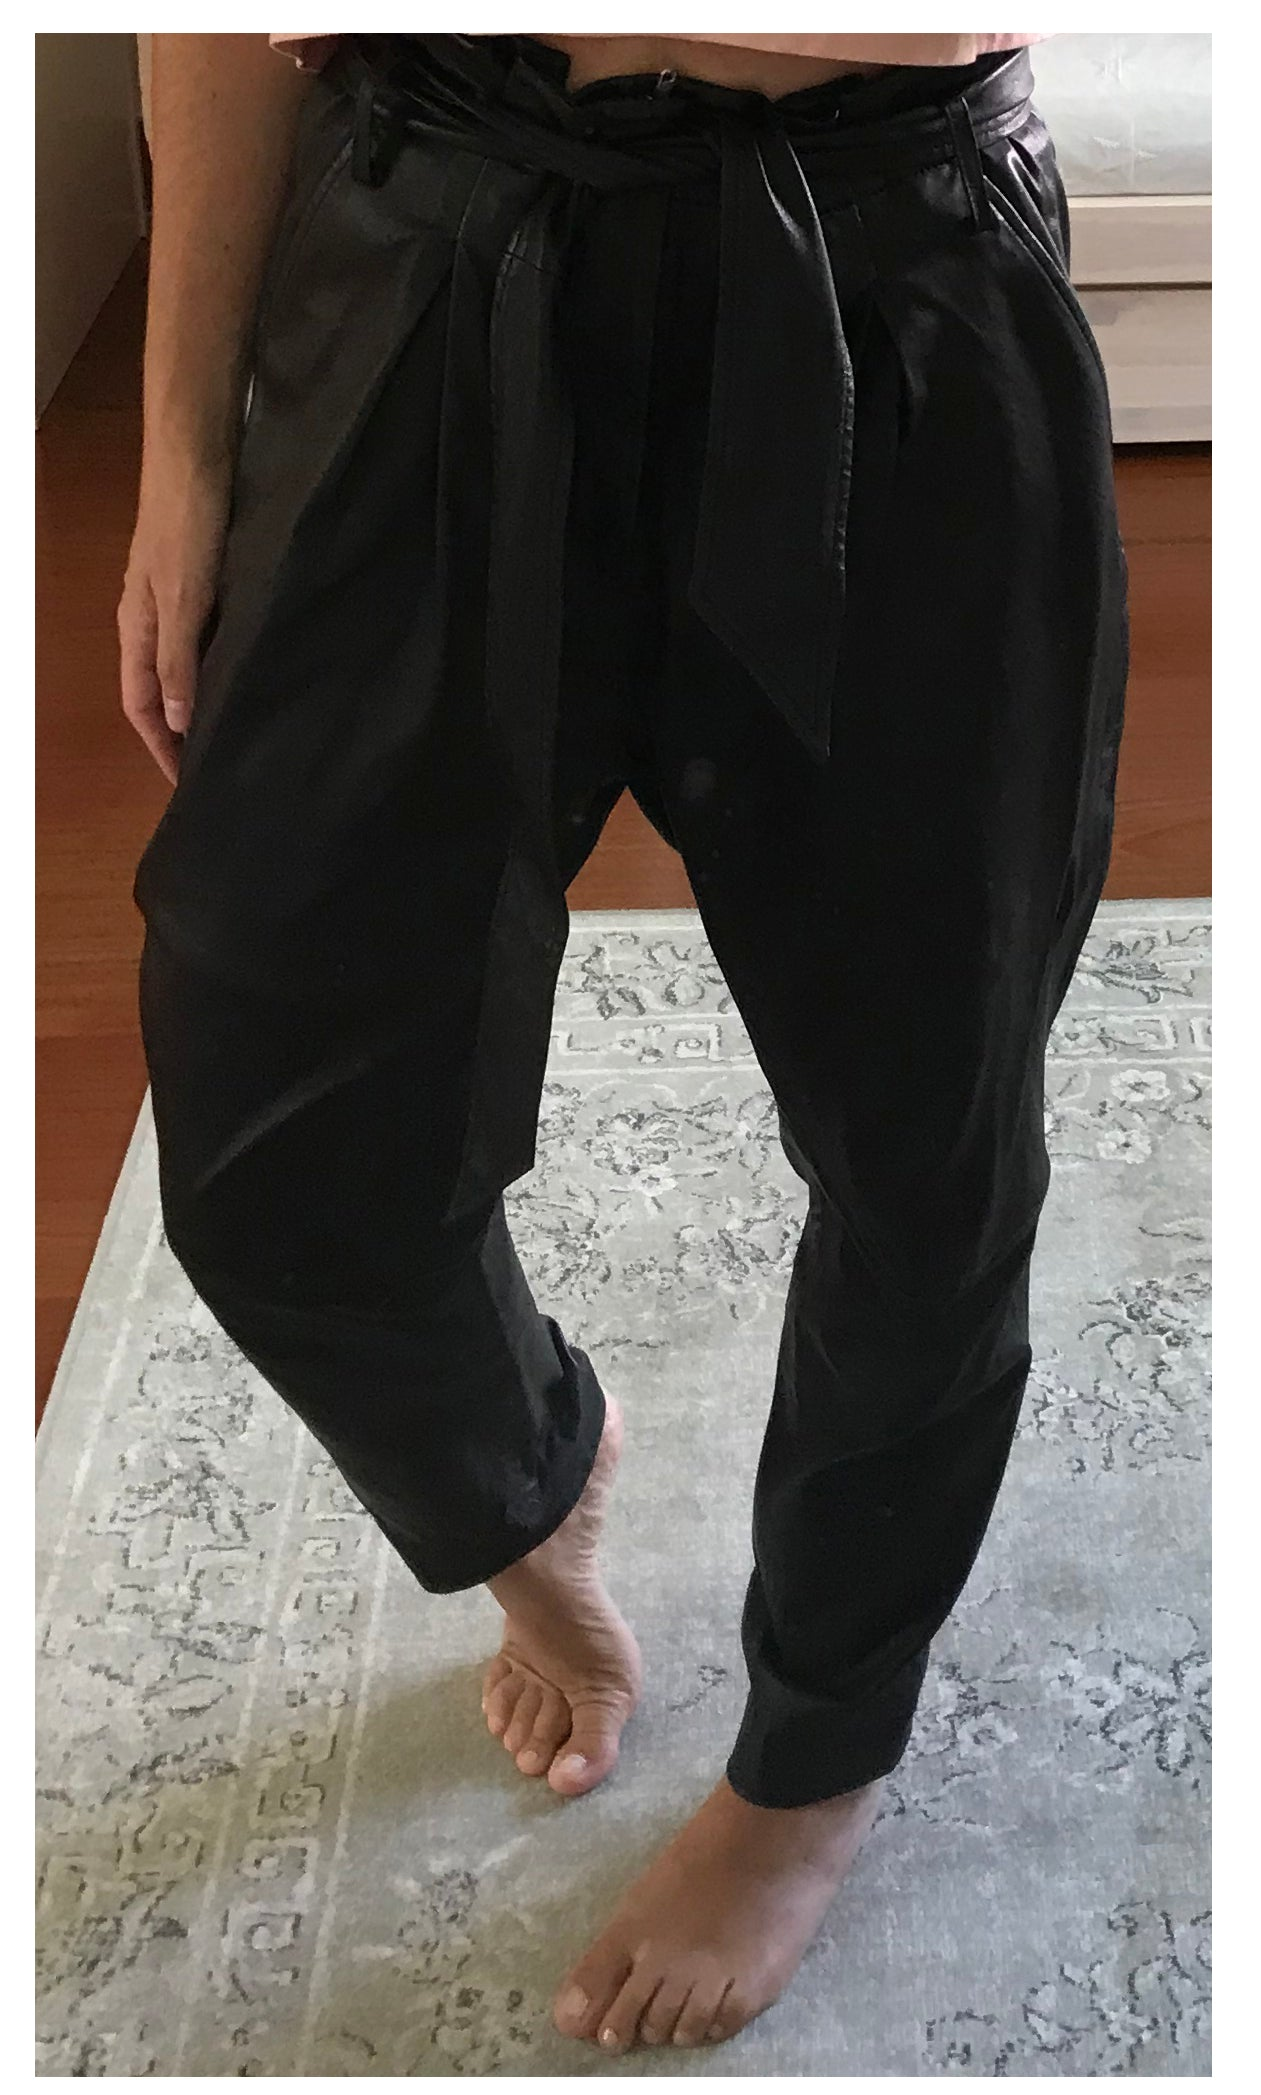 IRO SS19 Pleasant Model Black Leather Trousers Size 38 (EU)